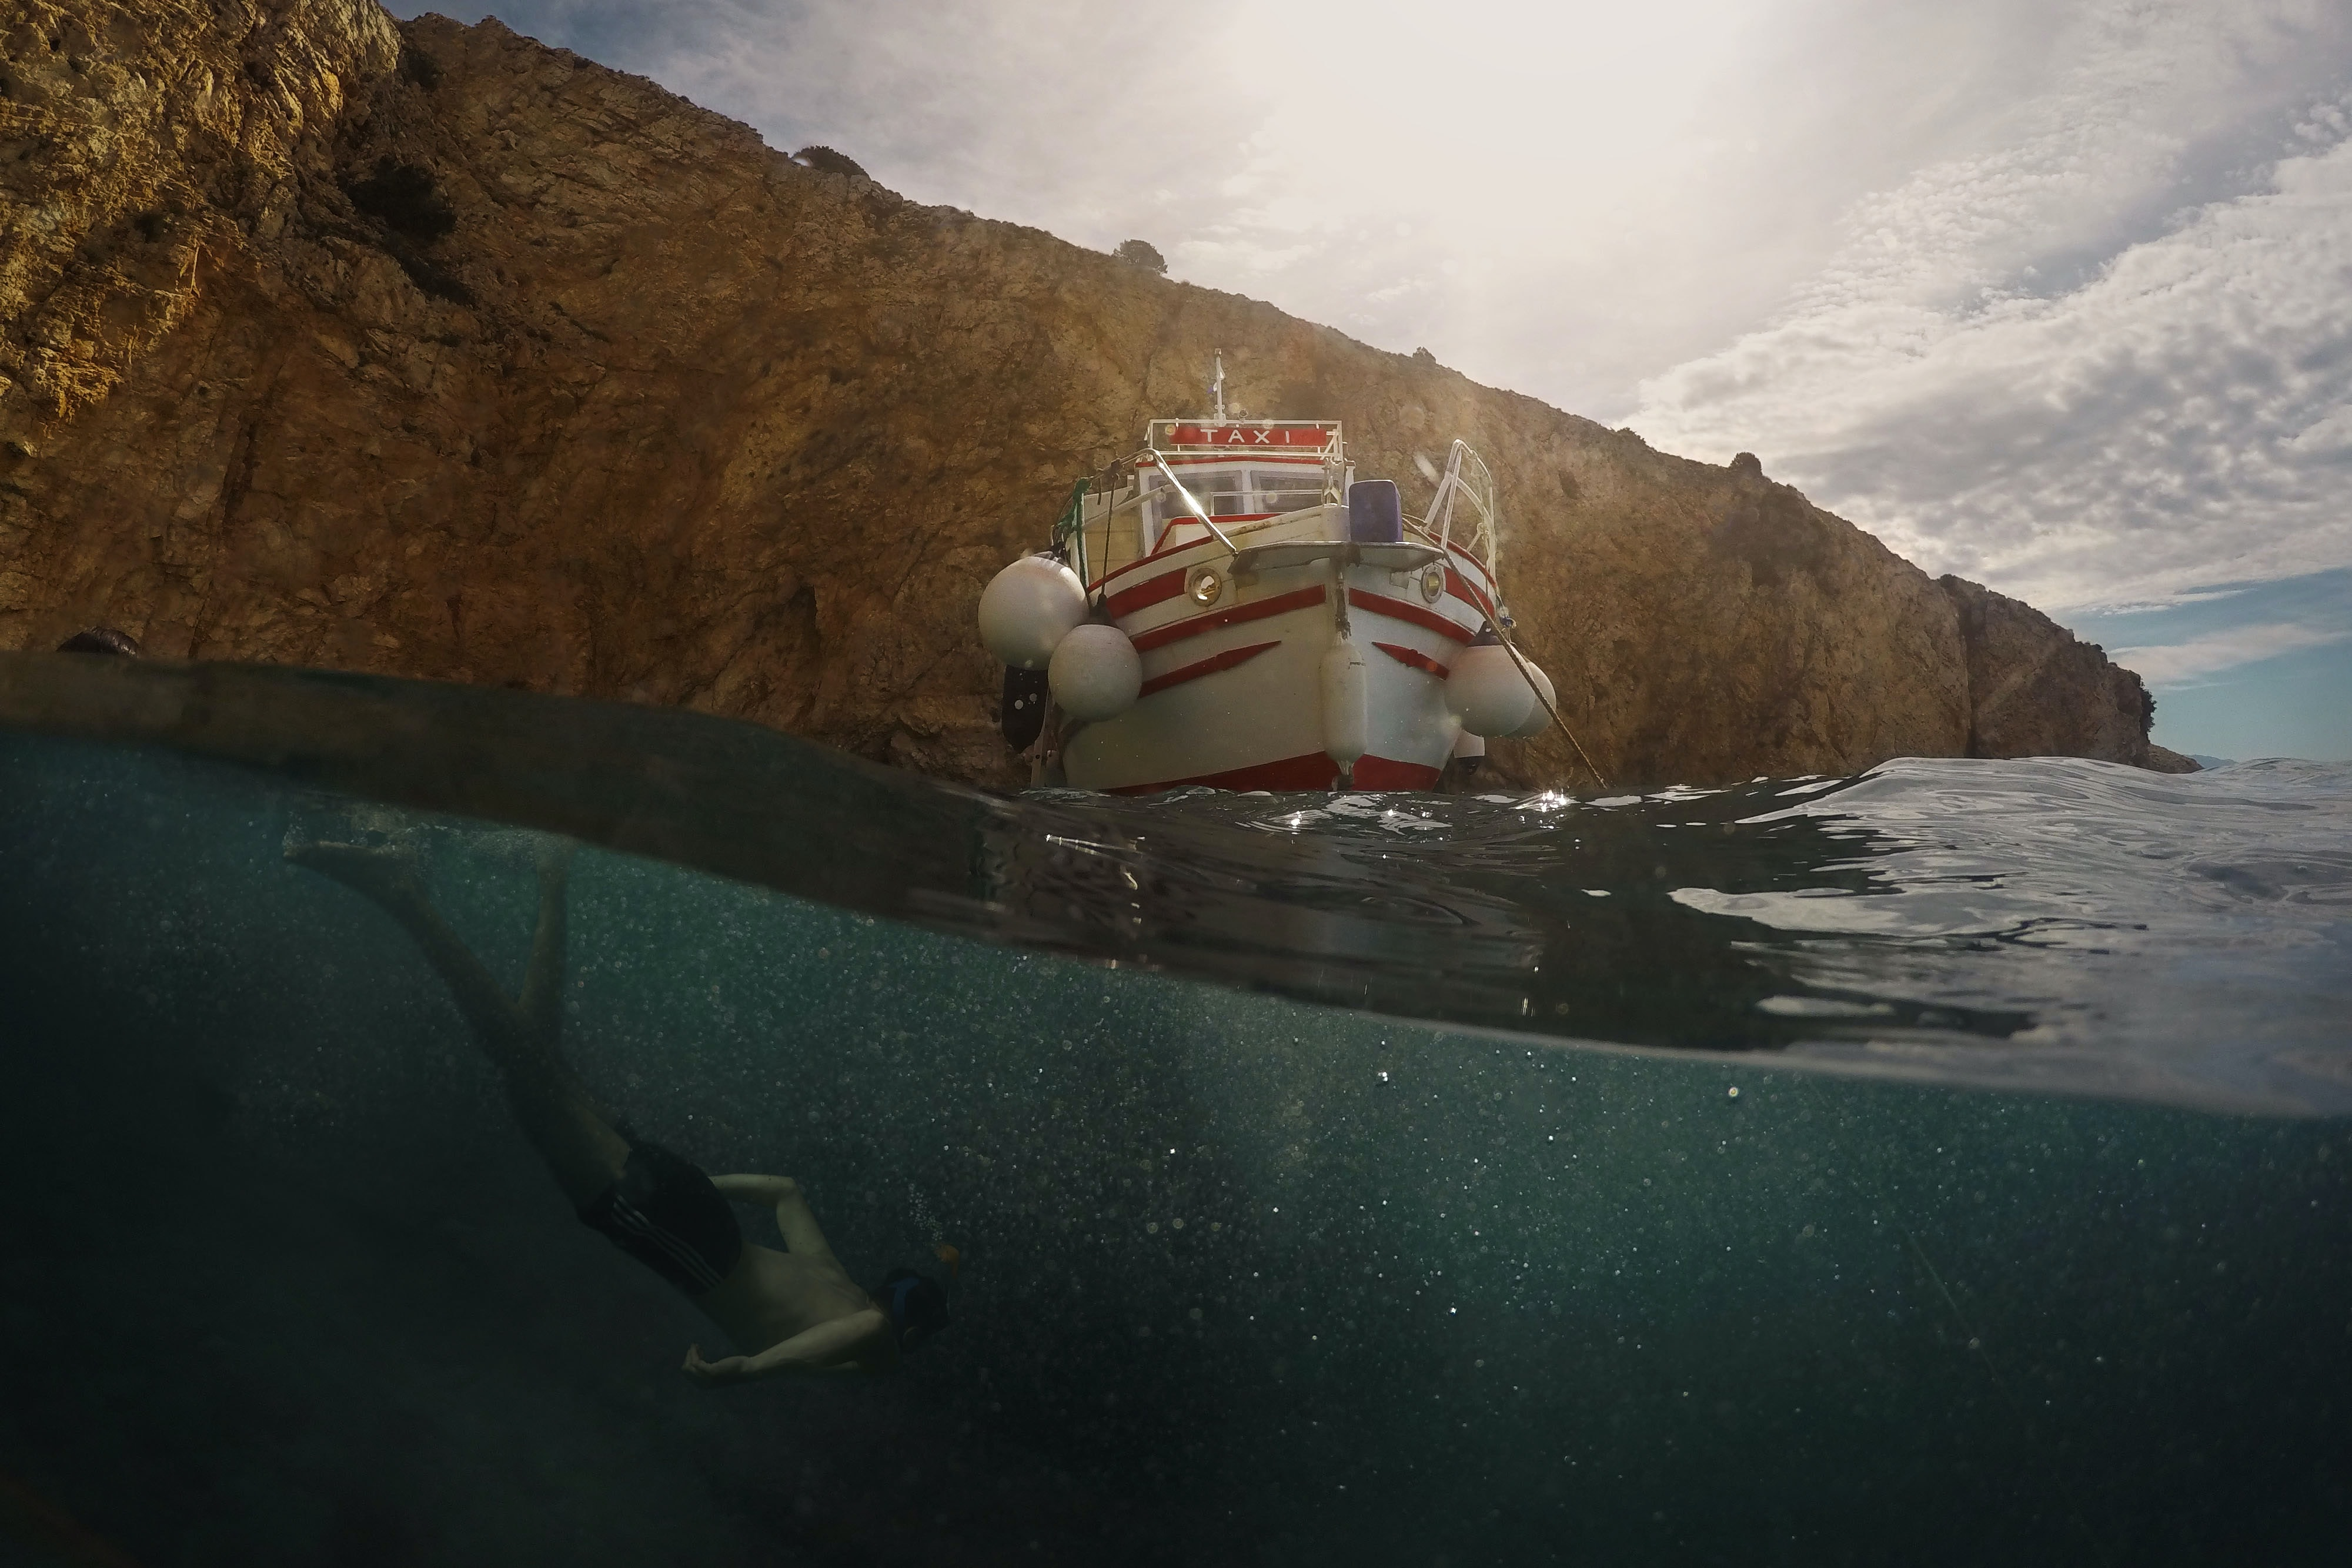 An impressive shot of a man diving near a water taxi by a cliff